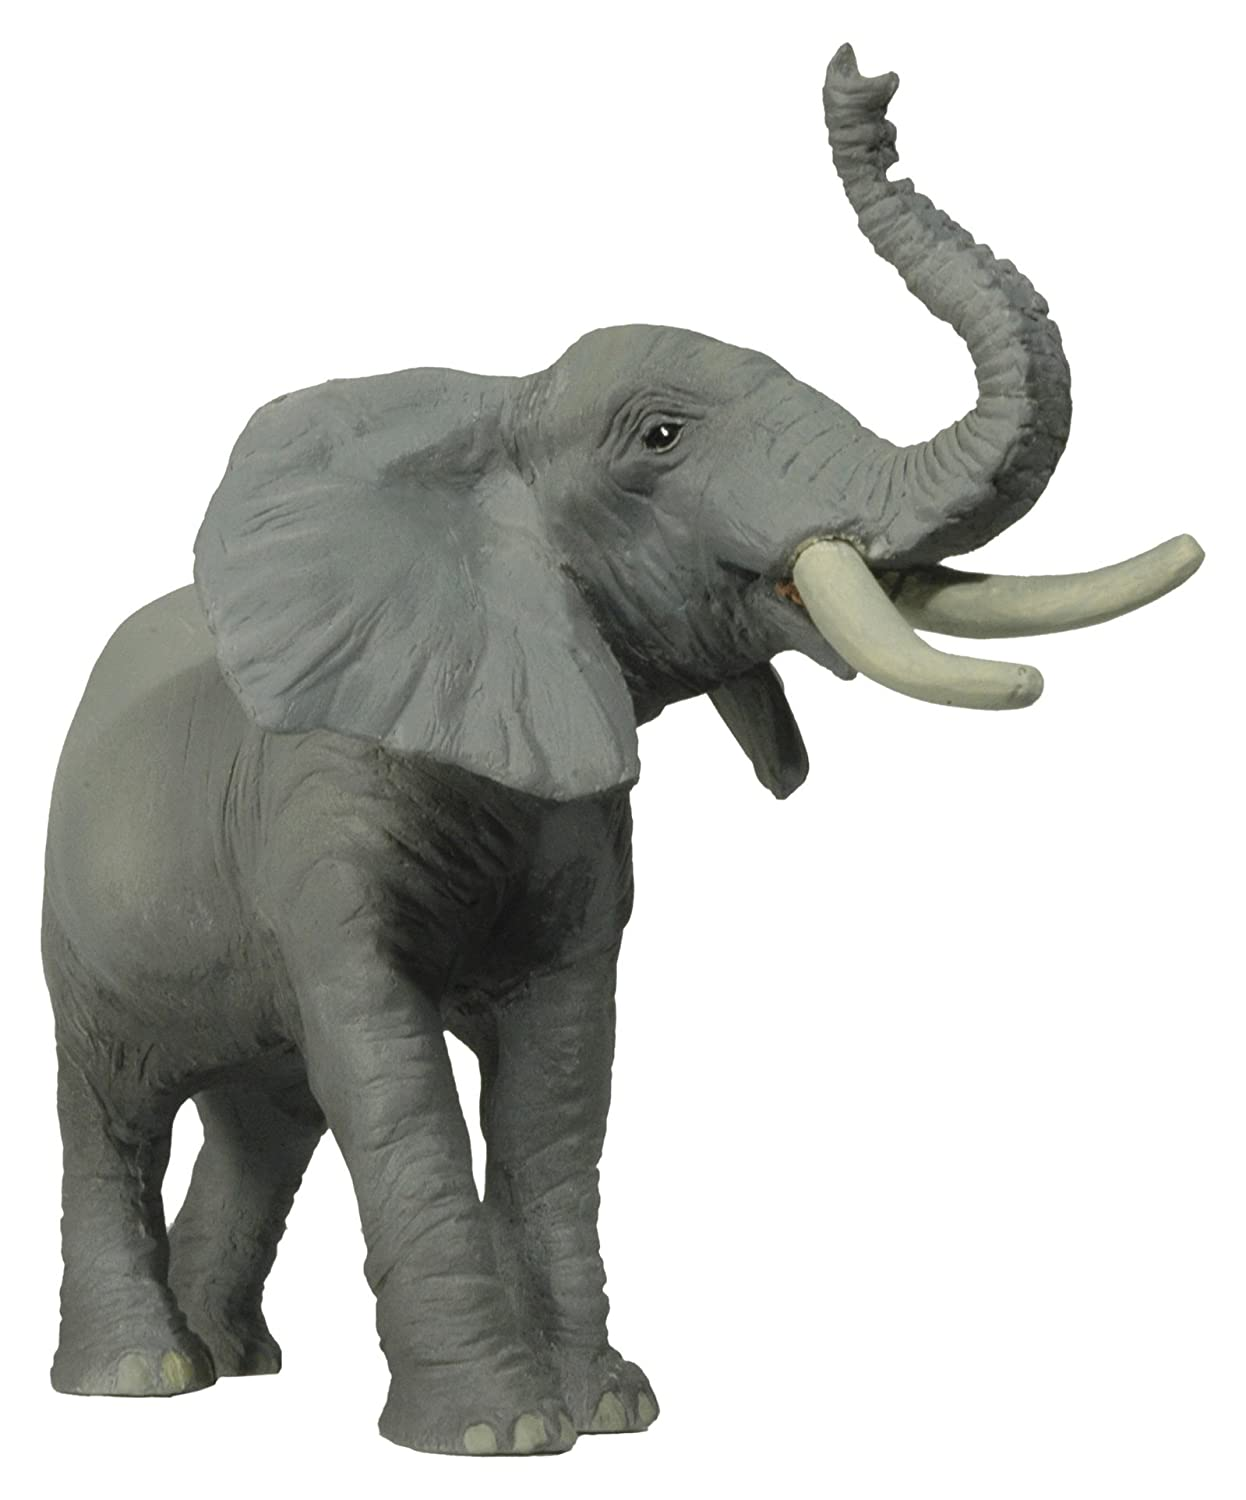 Papo Trumpeting Elephant Toy Figure Hotaling 50041